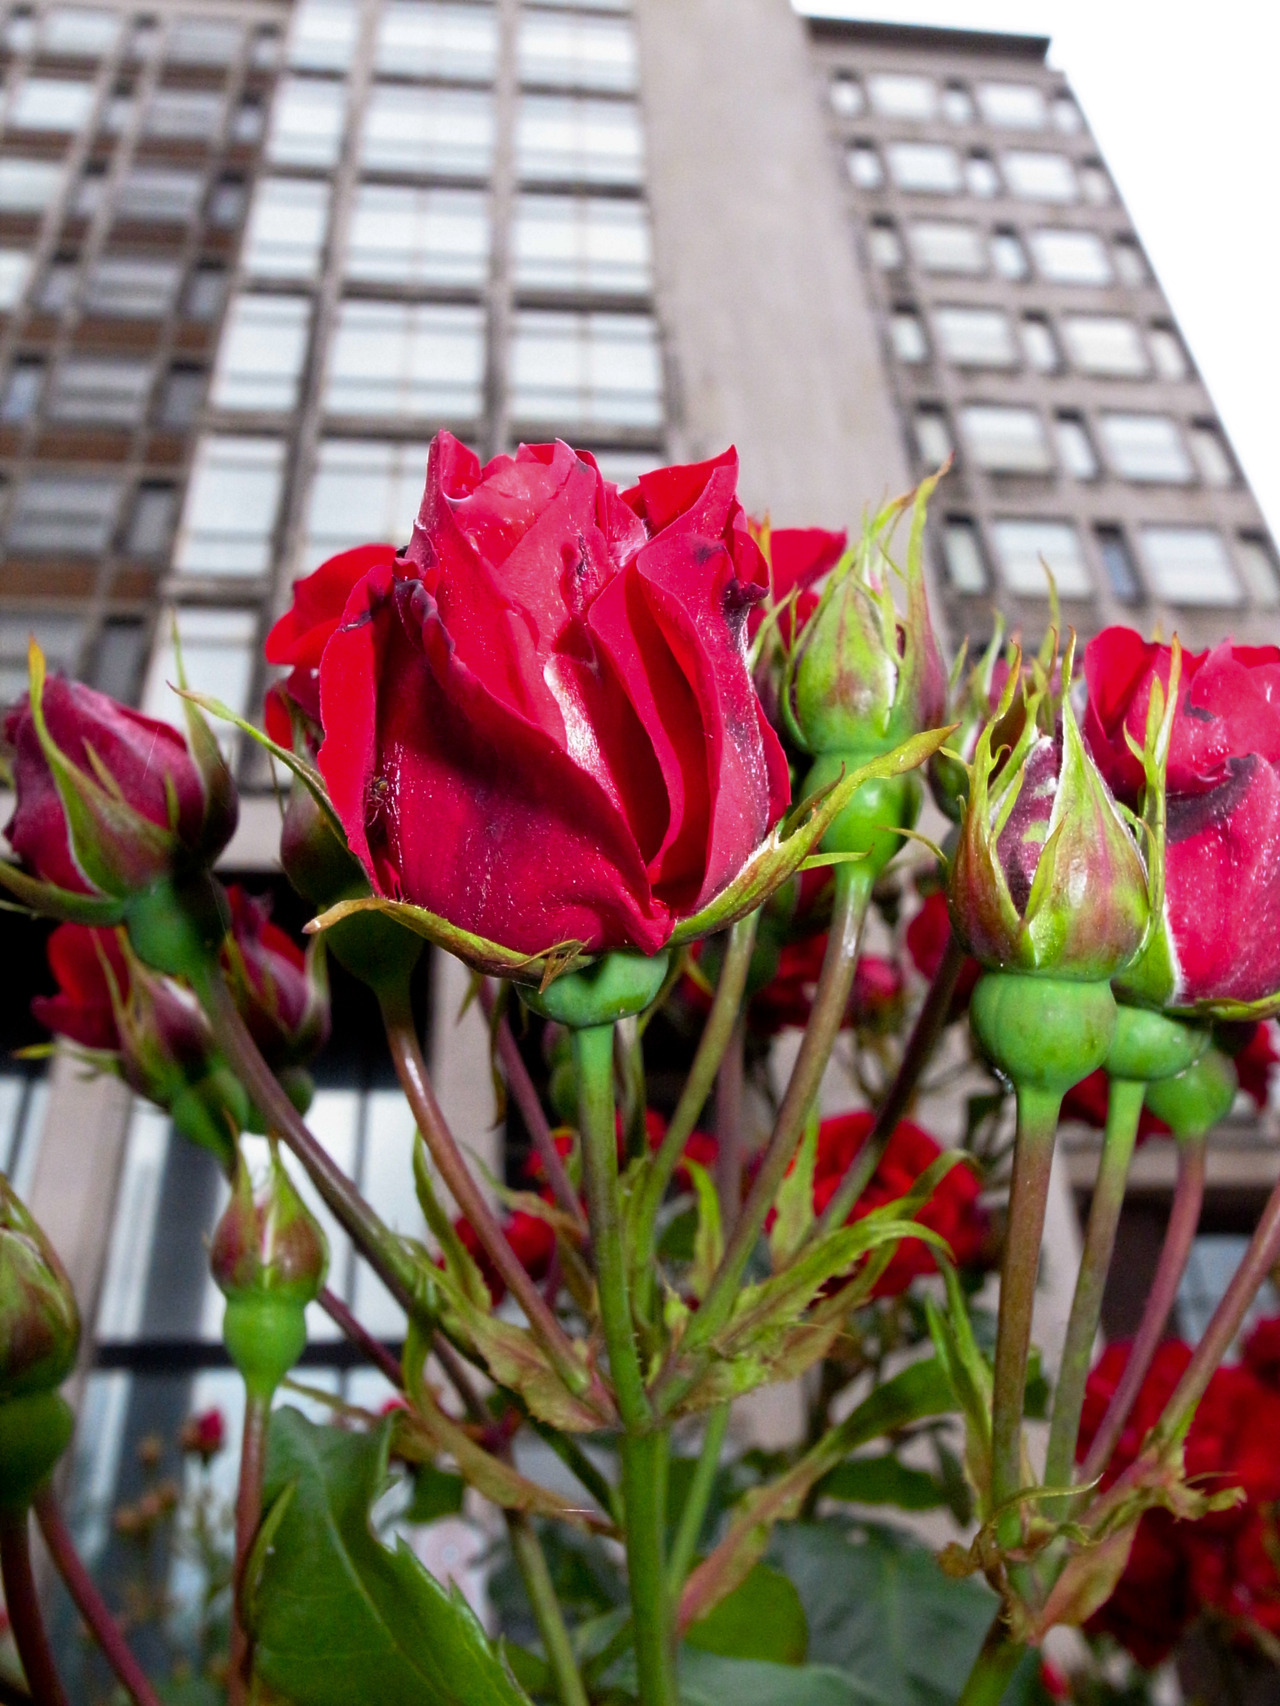 the rose in front of the towerblock